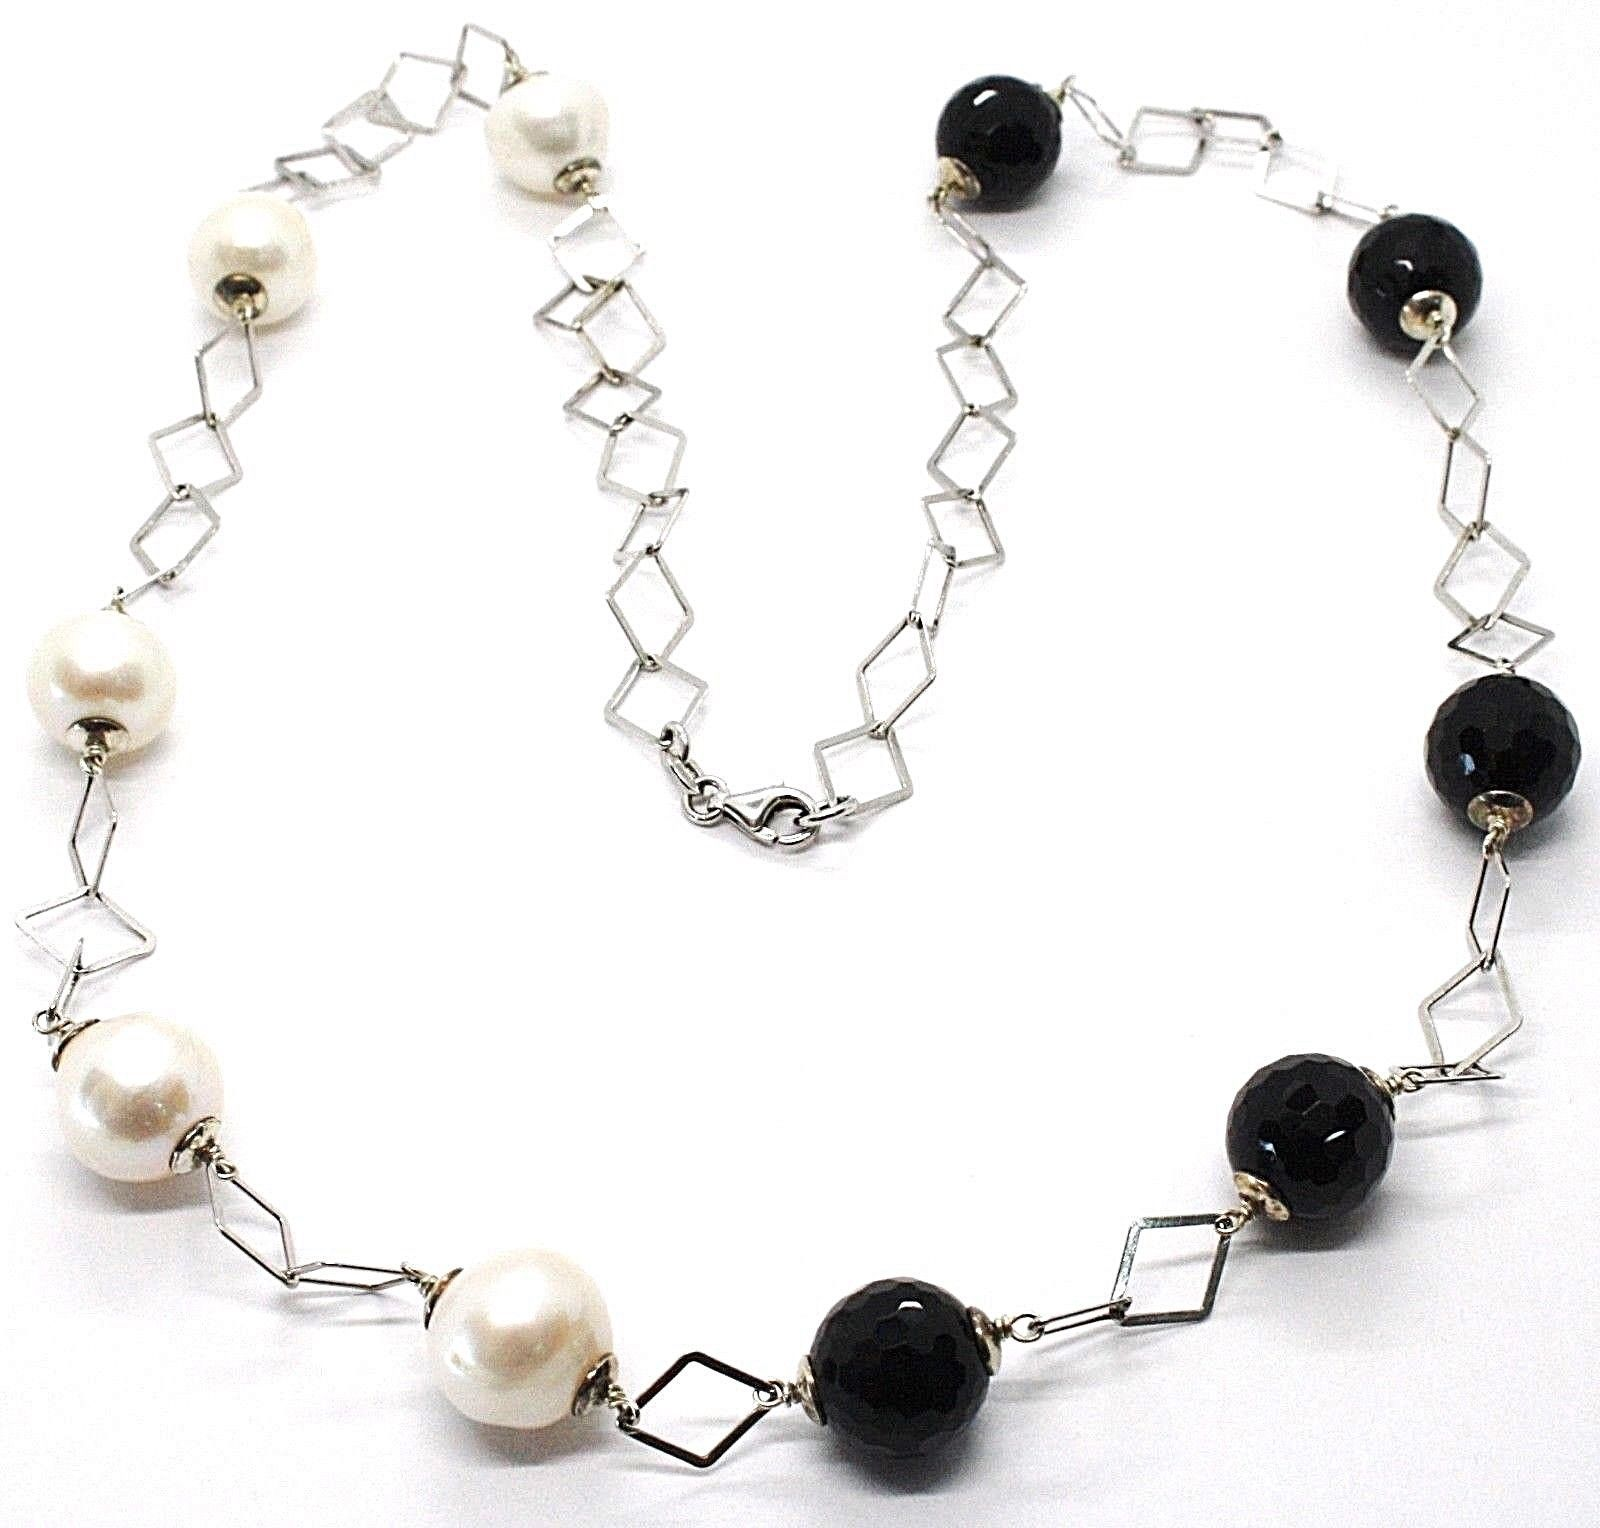 SILVER 925 NECKLACE, ONYX BLACK FACETED, PEARLS, 24 3/8in, CHAIN RHOMBUSES